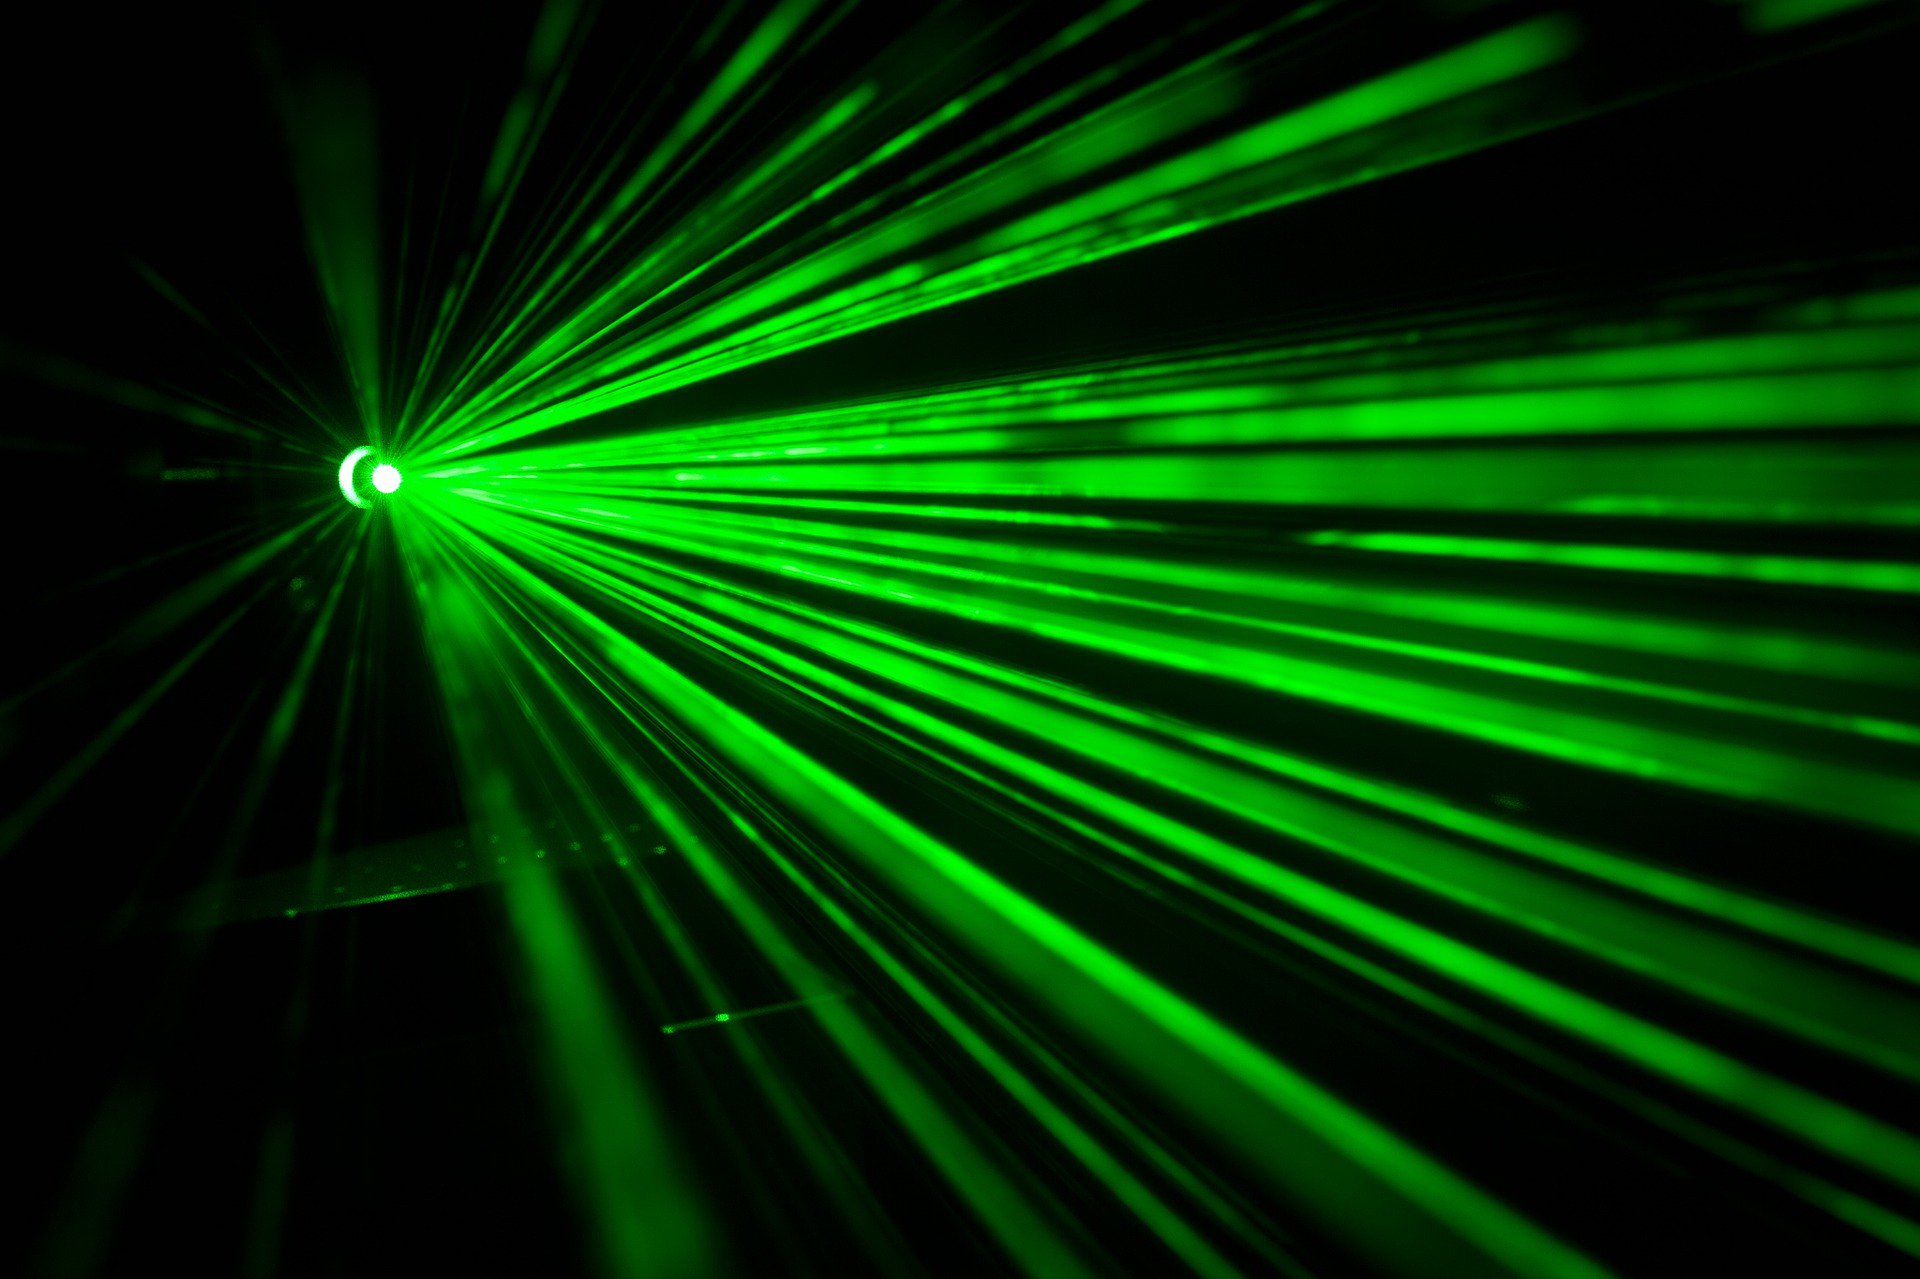 Image of several green lazer beams shining towards the camera. LED therapy available at the Karlfeldt Center of Meridian, Idaho.